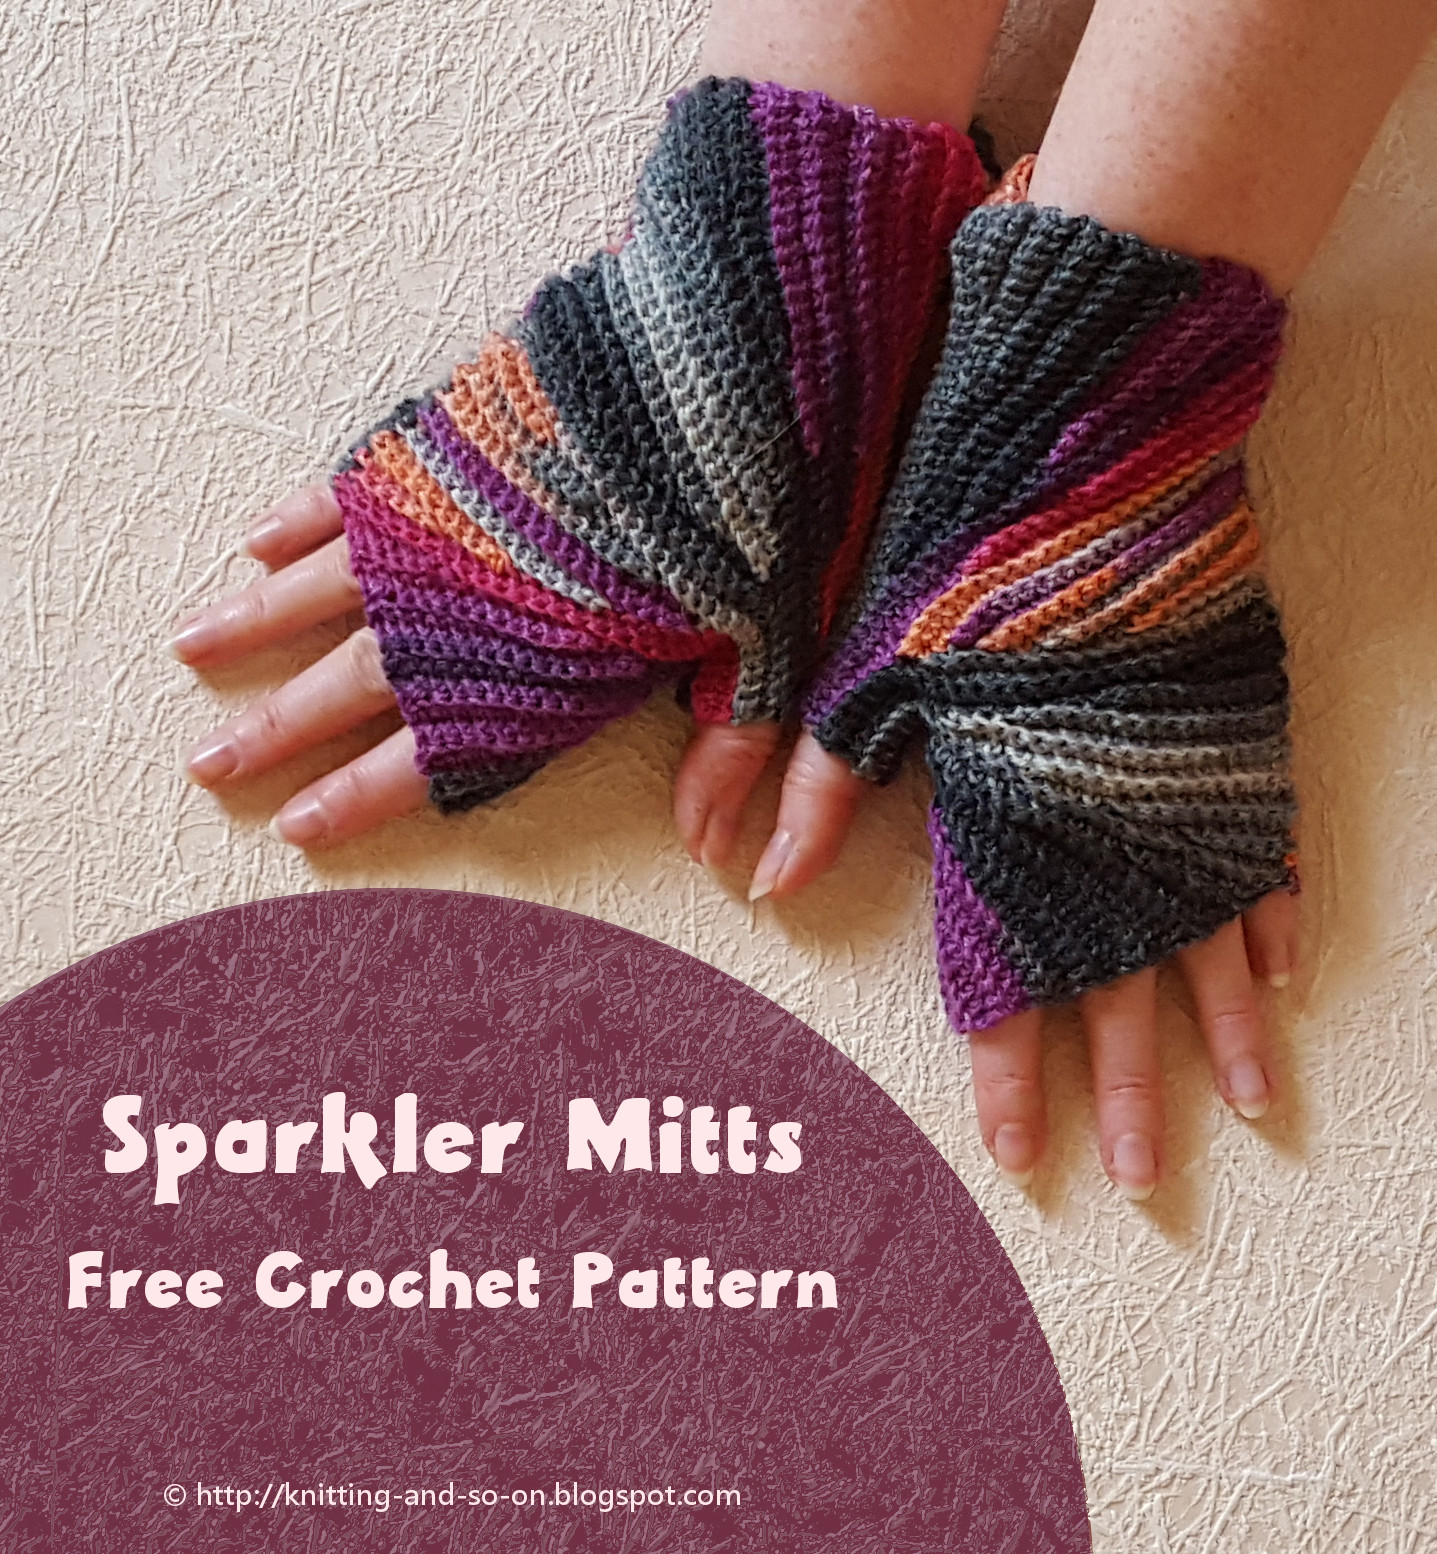 Knitting and so on: Sparkler Mitts